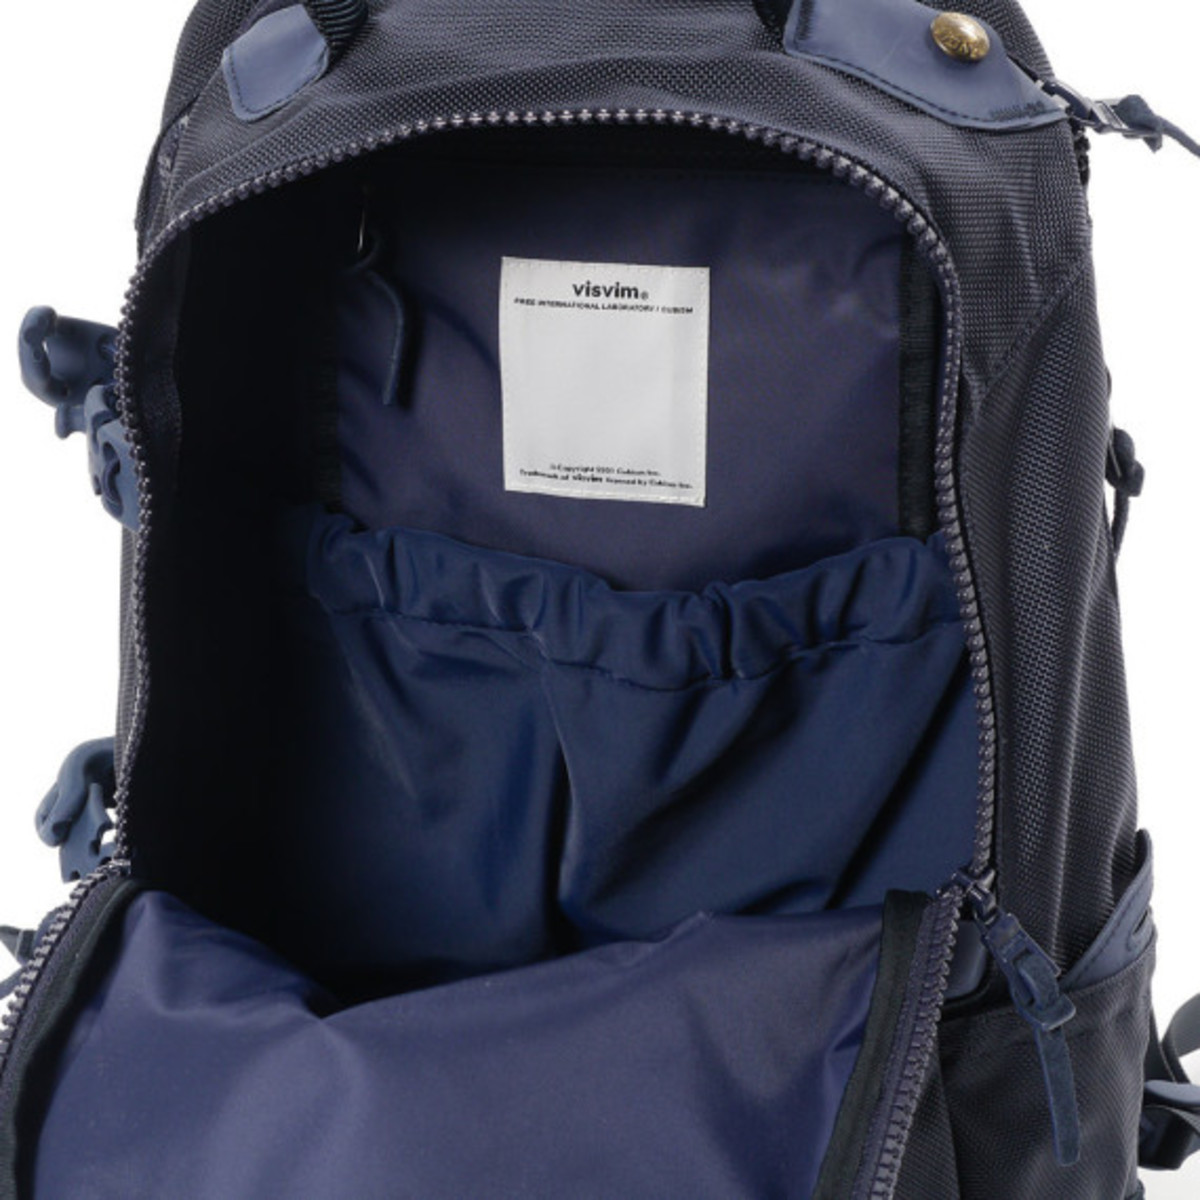 visvim-ballistic-20l-backpack-navy-12